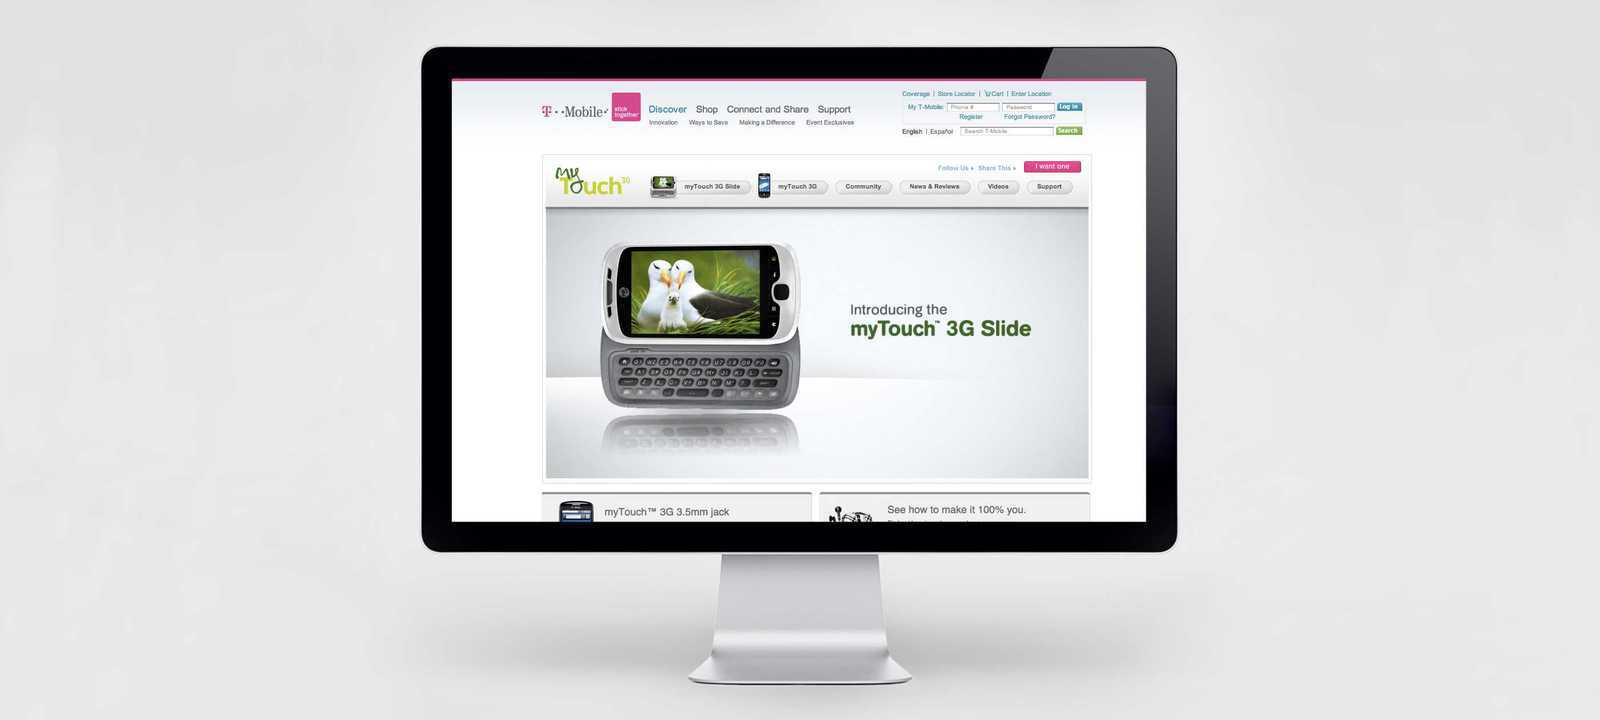 T-Mobile Cell Phone Launch Page